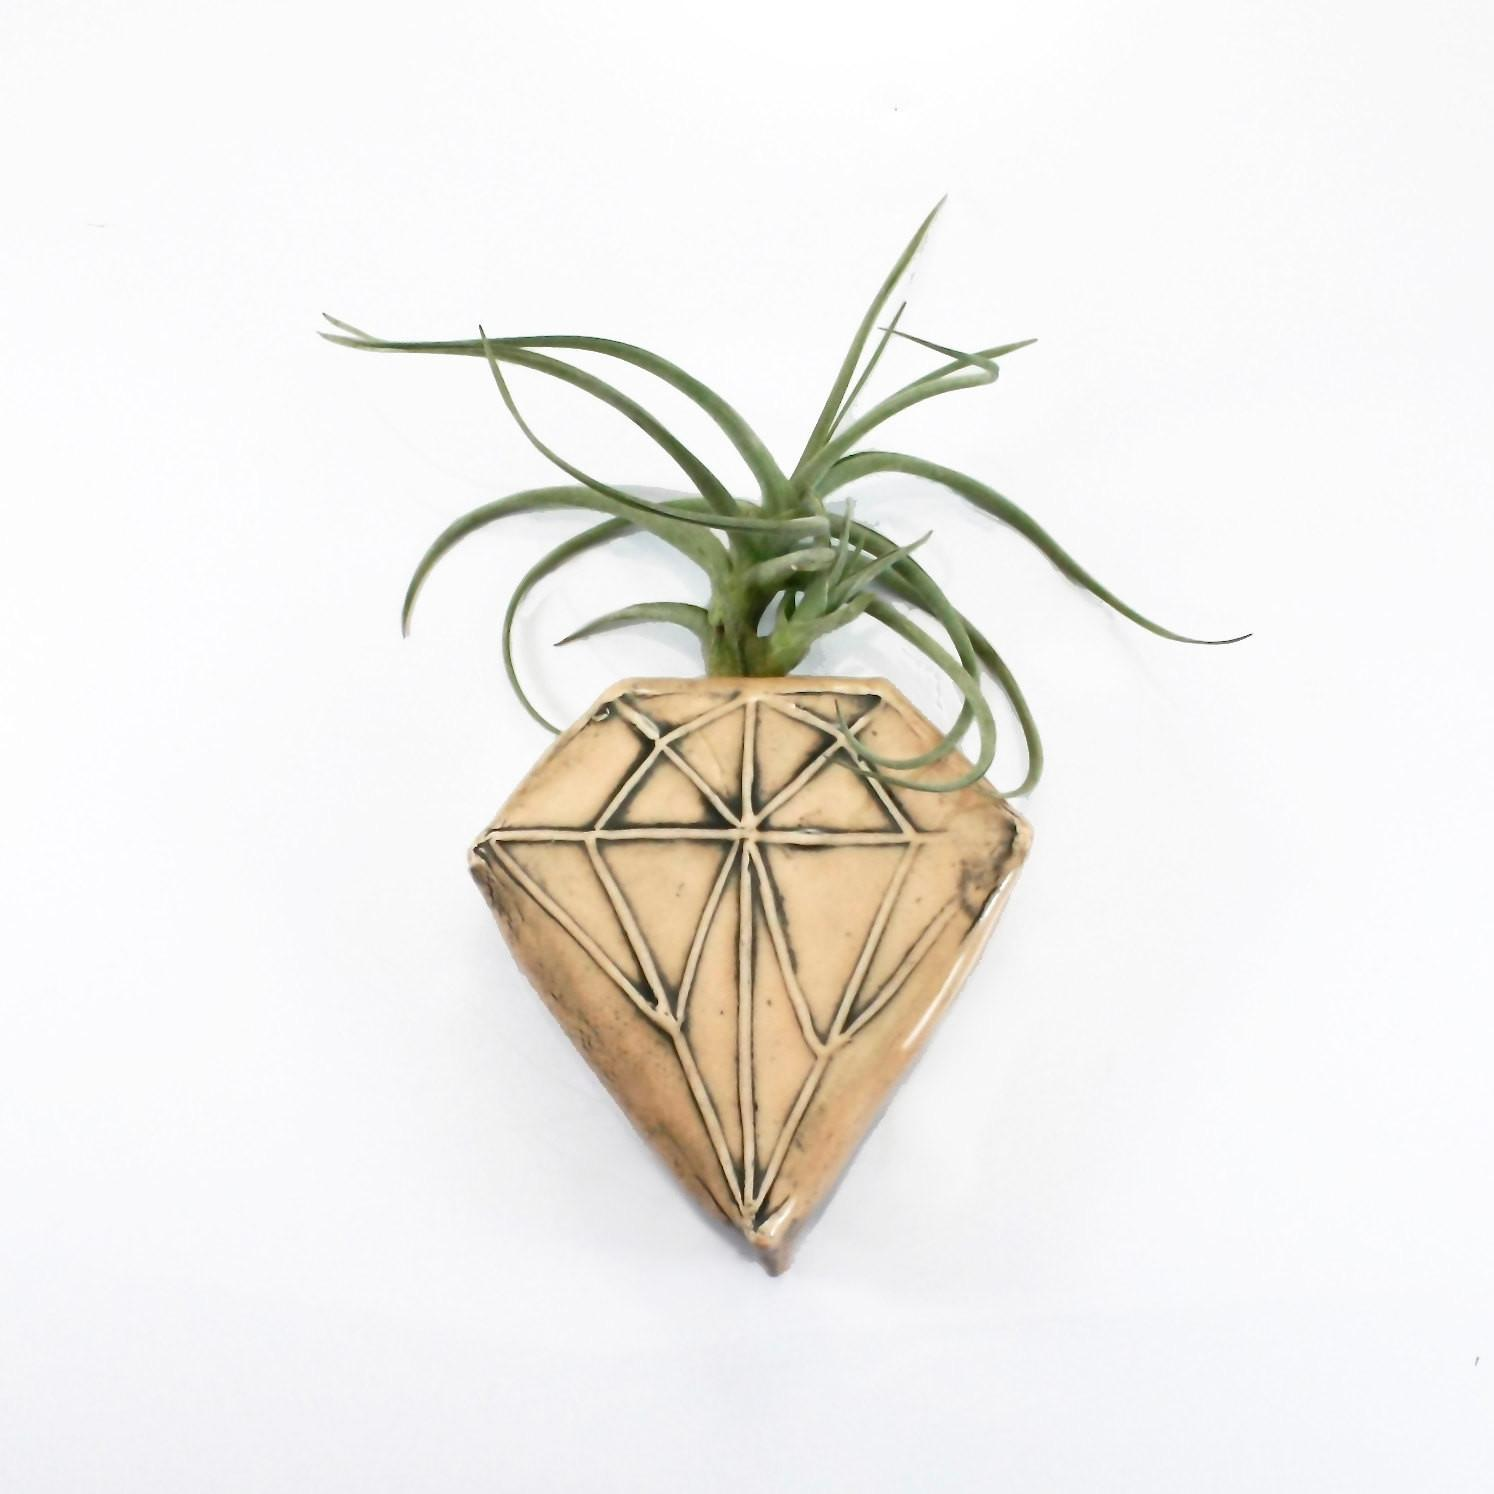 Peach Diamond Geometric Magnetic Clay Bud Vase Wall